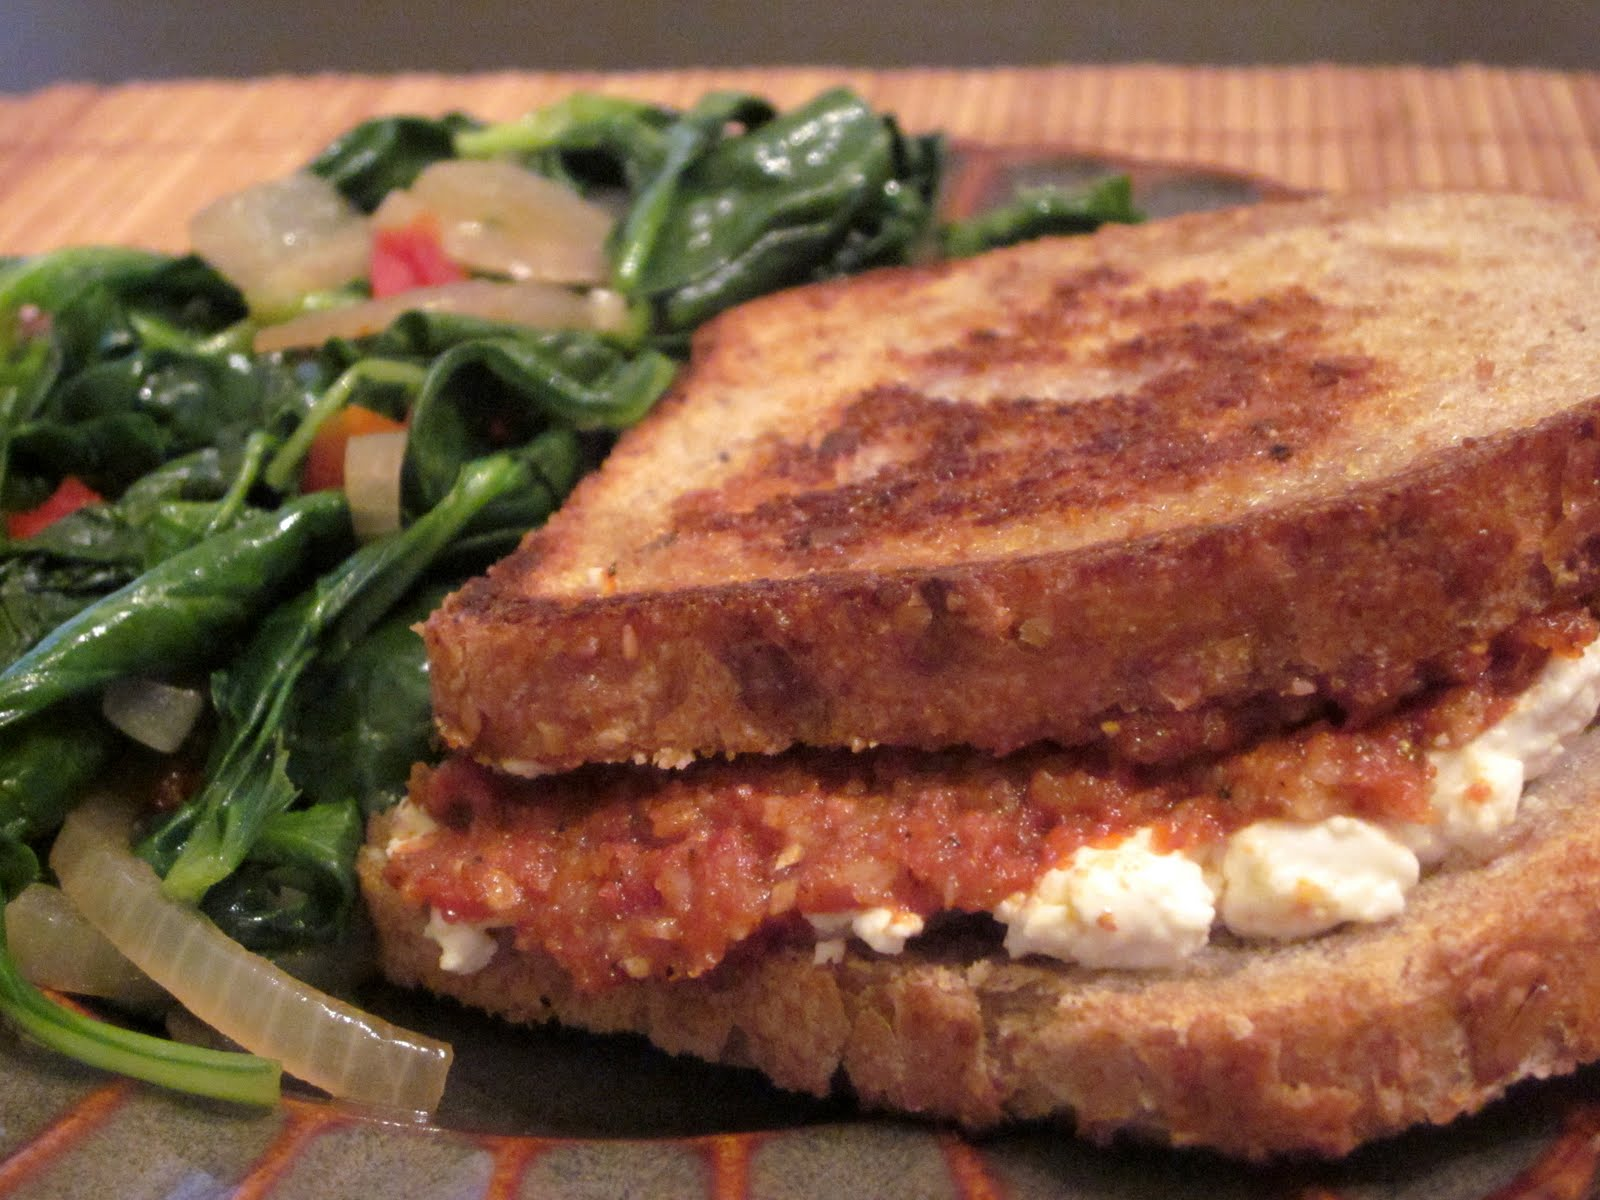 Kuk's Kitchen: Grilled Sun-dried Tomato and Goat Cheese